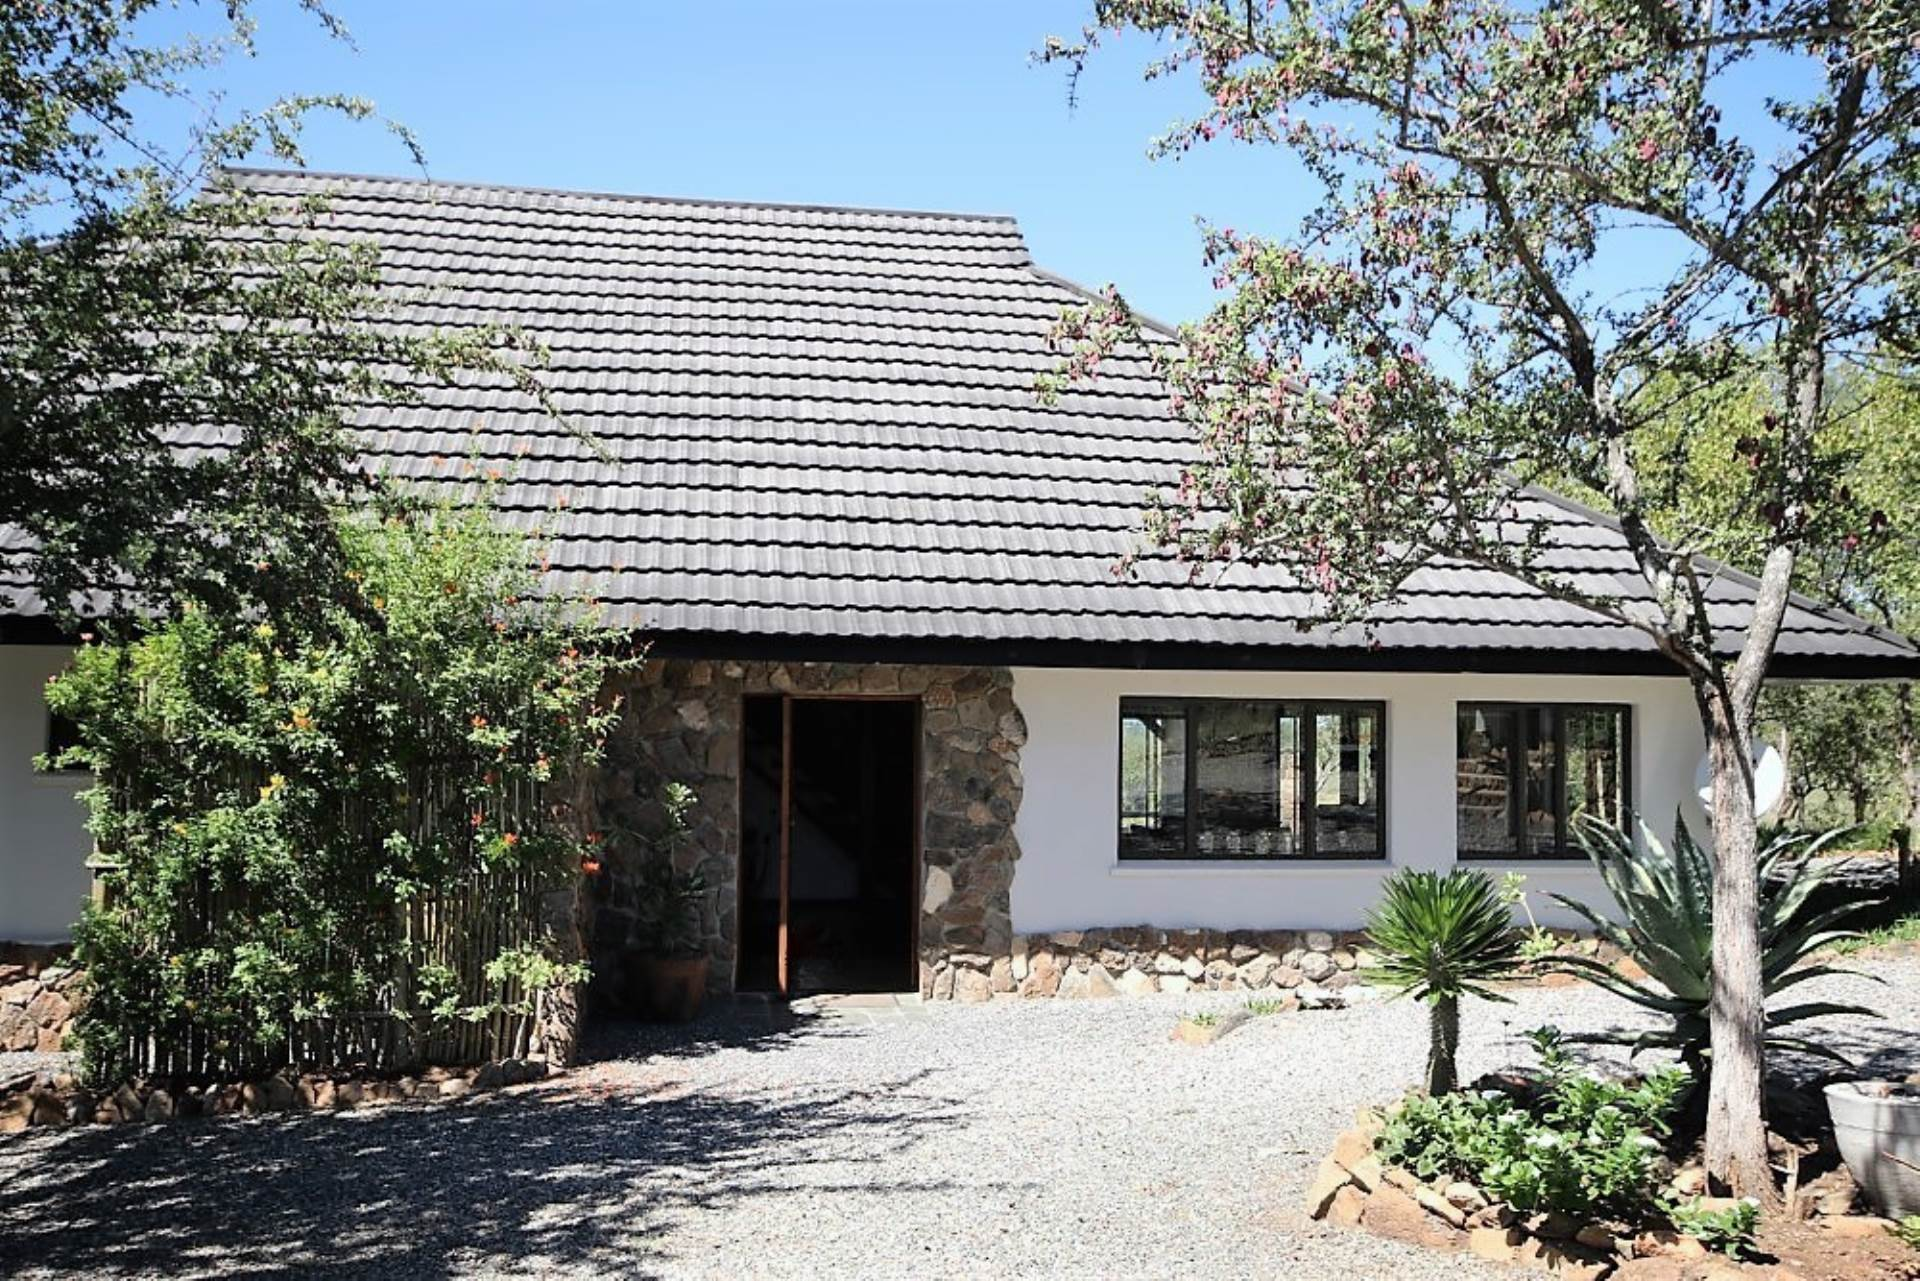 3 BedroomHouse For Sale In Grietjie Game Reserve